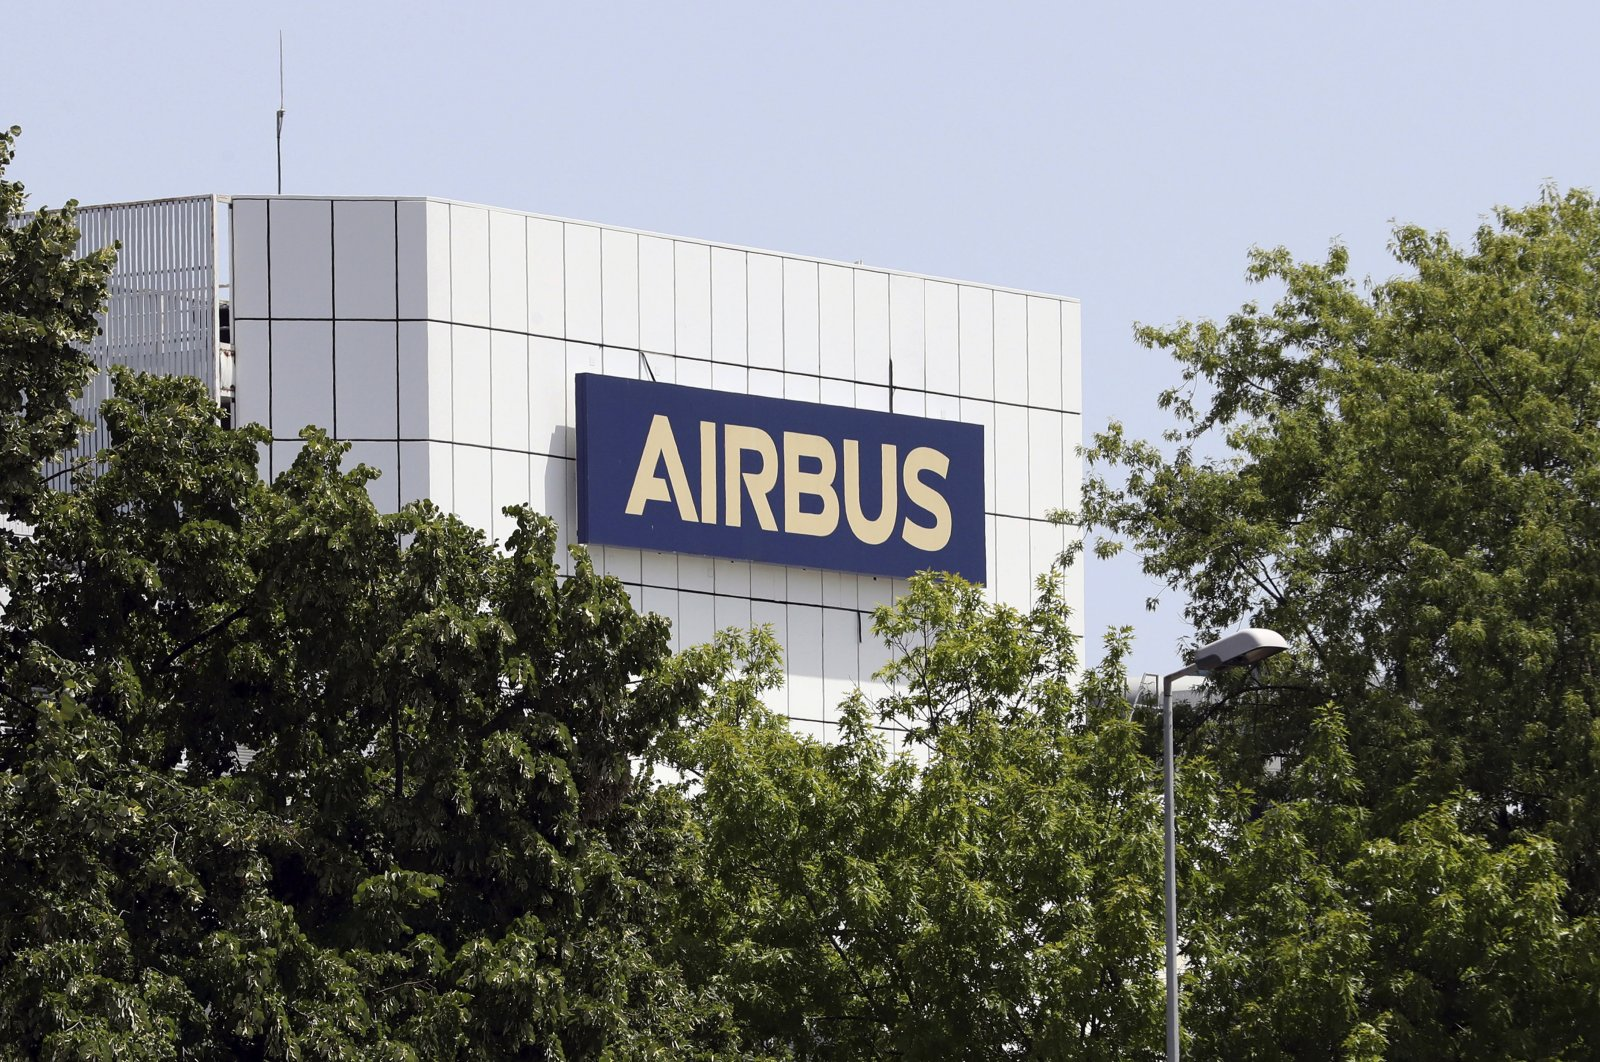 The logo of the Airbus group is displayed in Toulouse, south of France, July 9, 2020. (AP Photo)